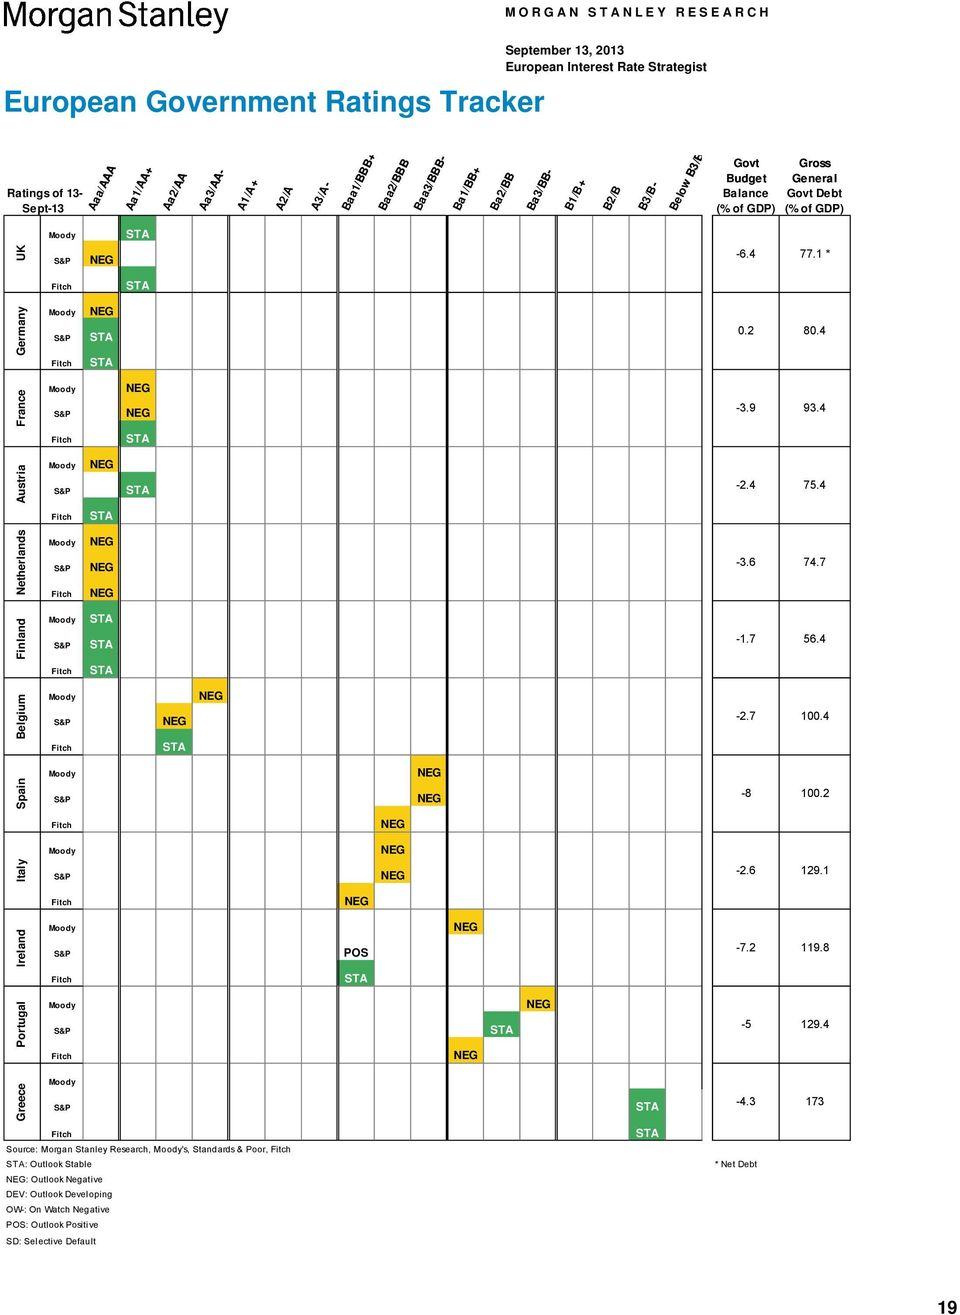 4 Belgium Finland Netherlands Austria France Moody S&P Fitch Moody S&P Fitch Moody S&P Fitch Moody S&P Fitch Moody S&P -3.9-2.4-3.6-1.7-2.7 93.4 75.4 74.7 56.4 1.